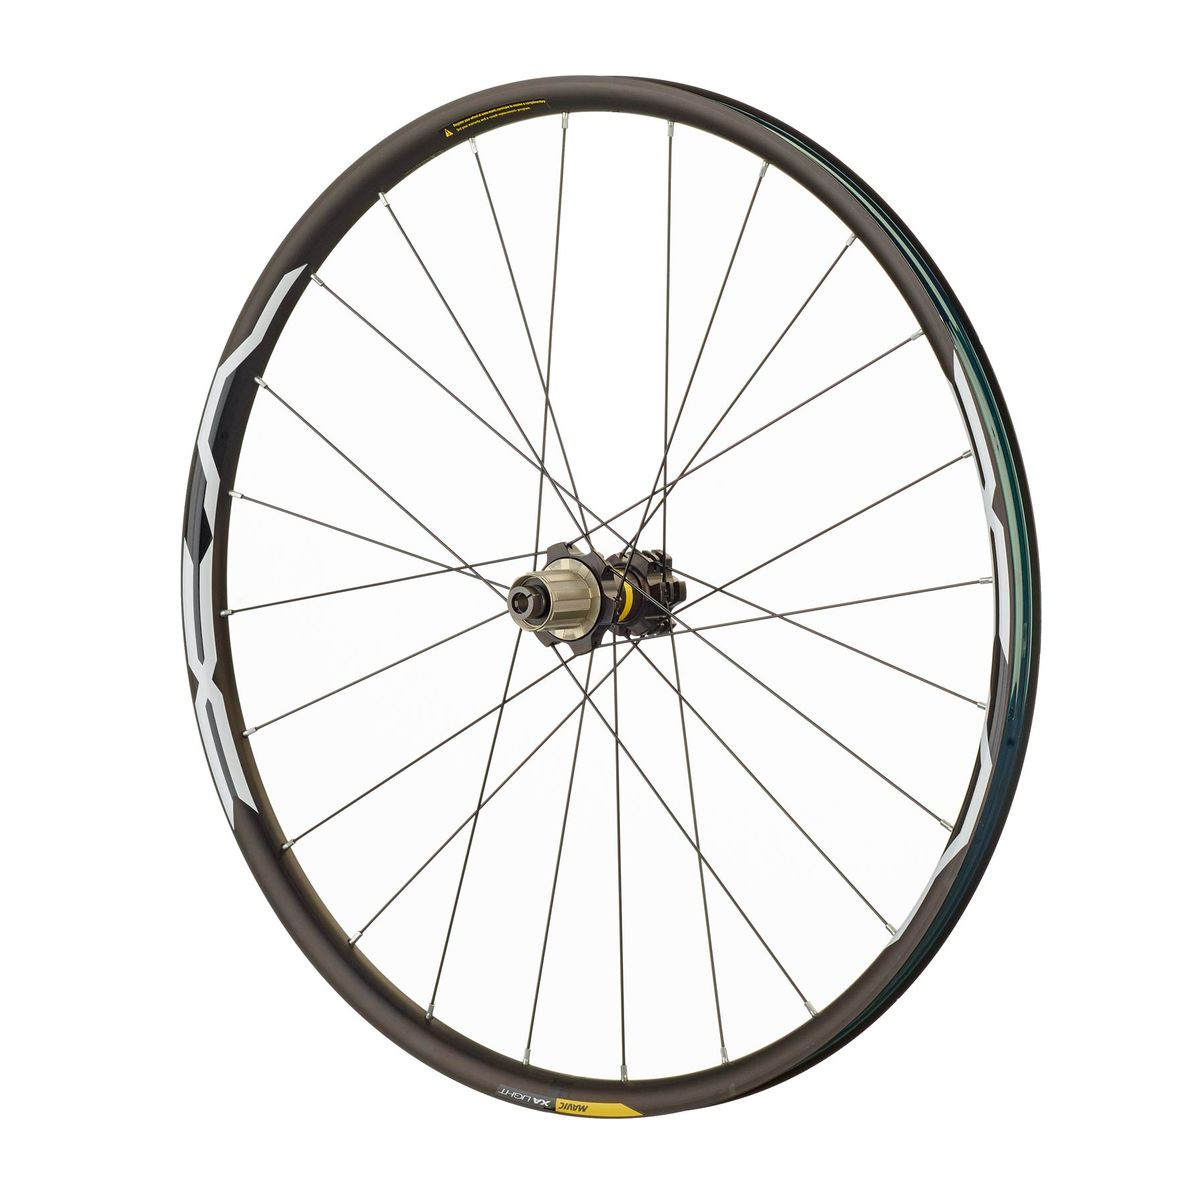 XA Lite Disc MTB rear wheel 2018